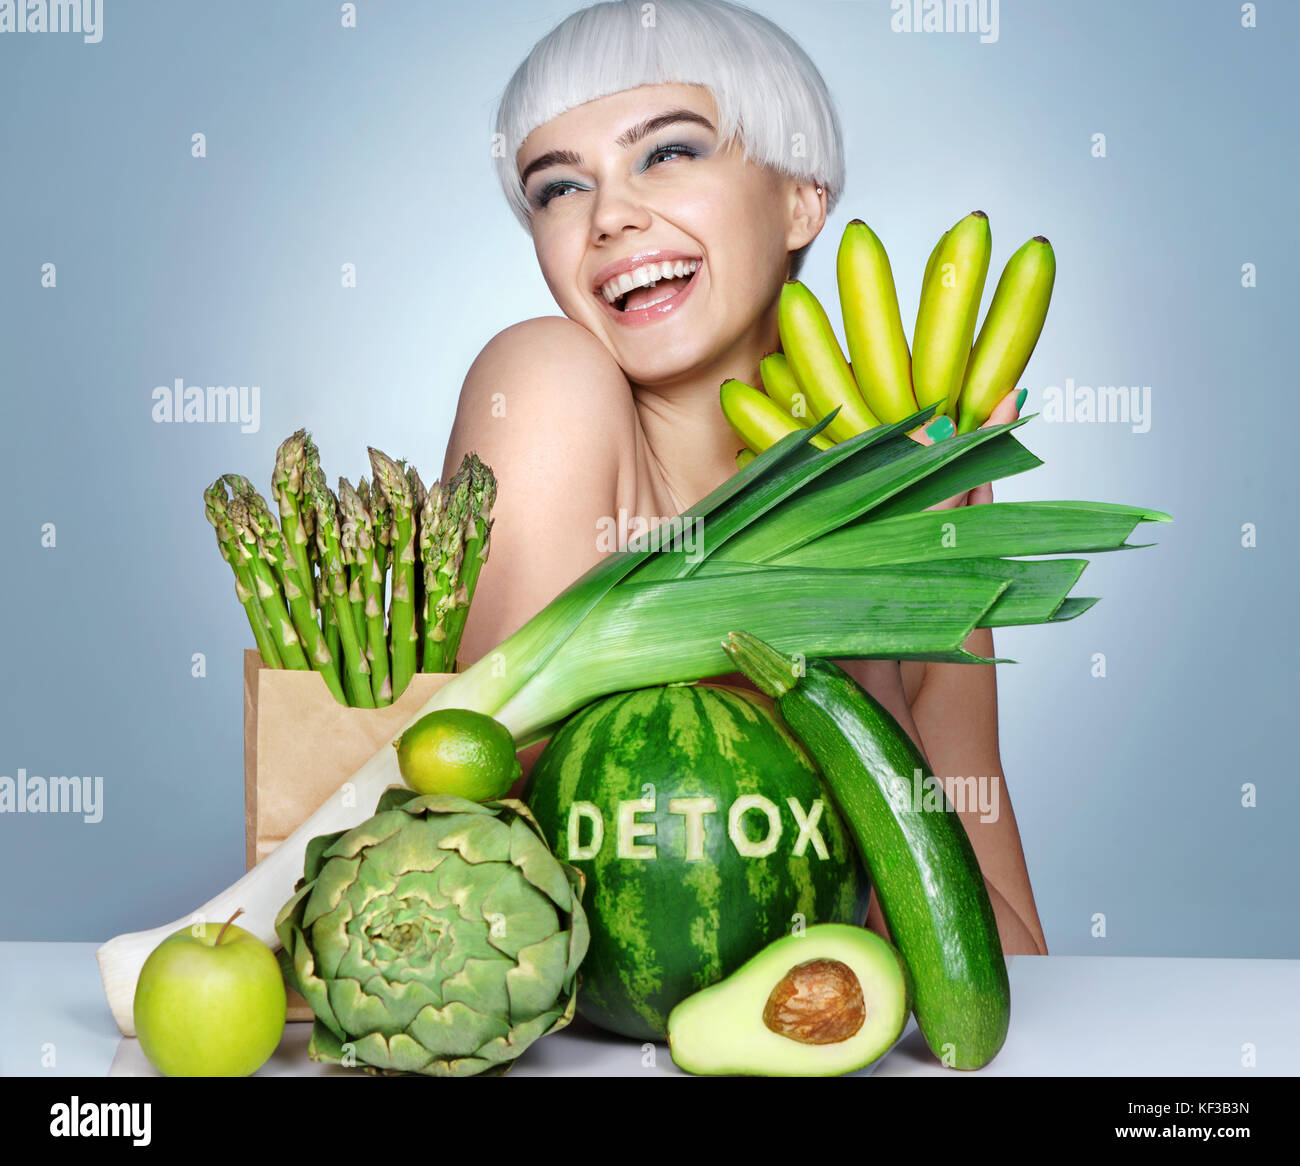 Happy young girl with an abundance of fruits and vegetables. Photo of smiling blonde girl on blue background. Healthy - Stock Image